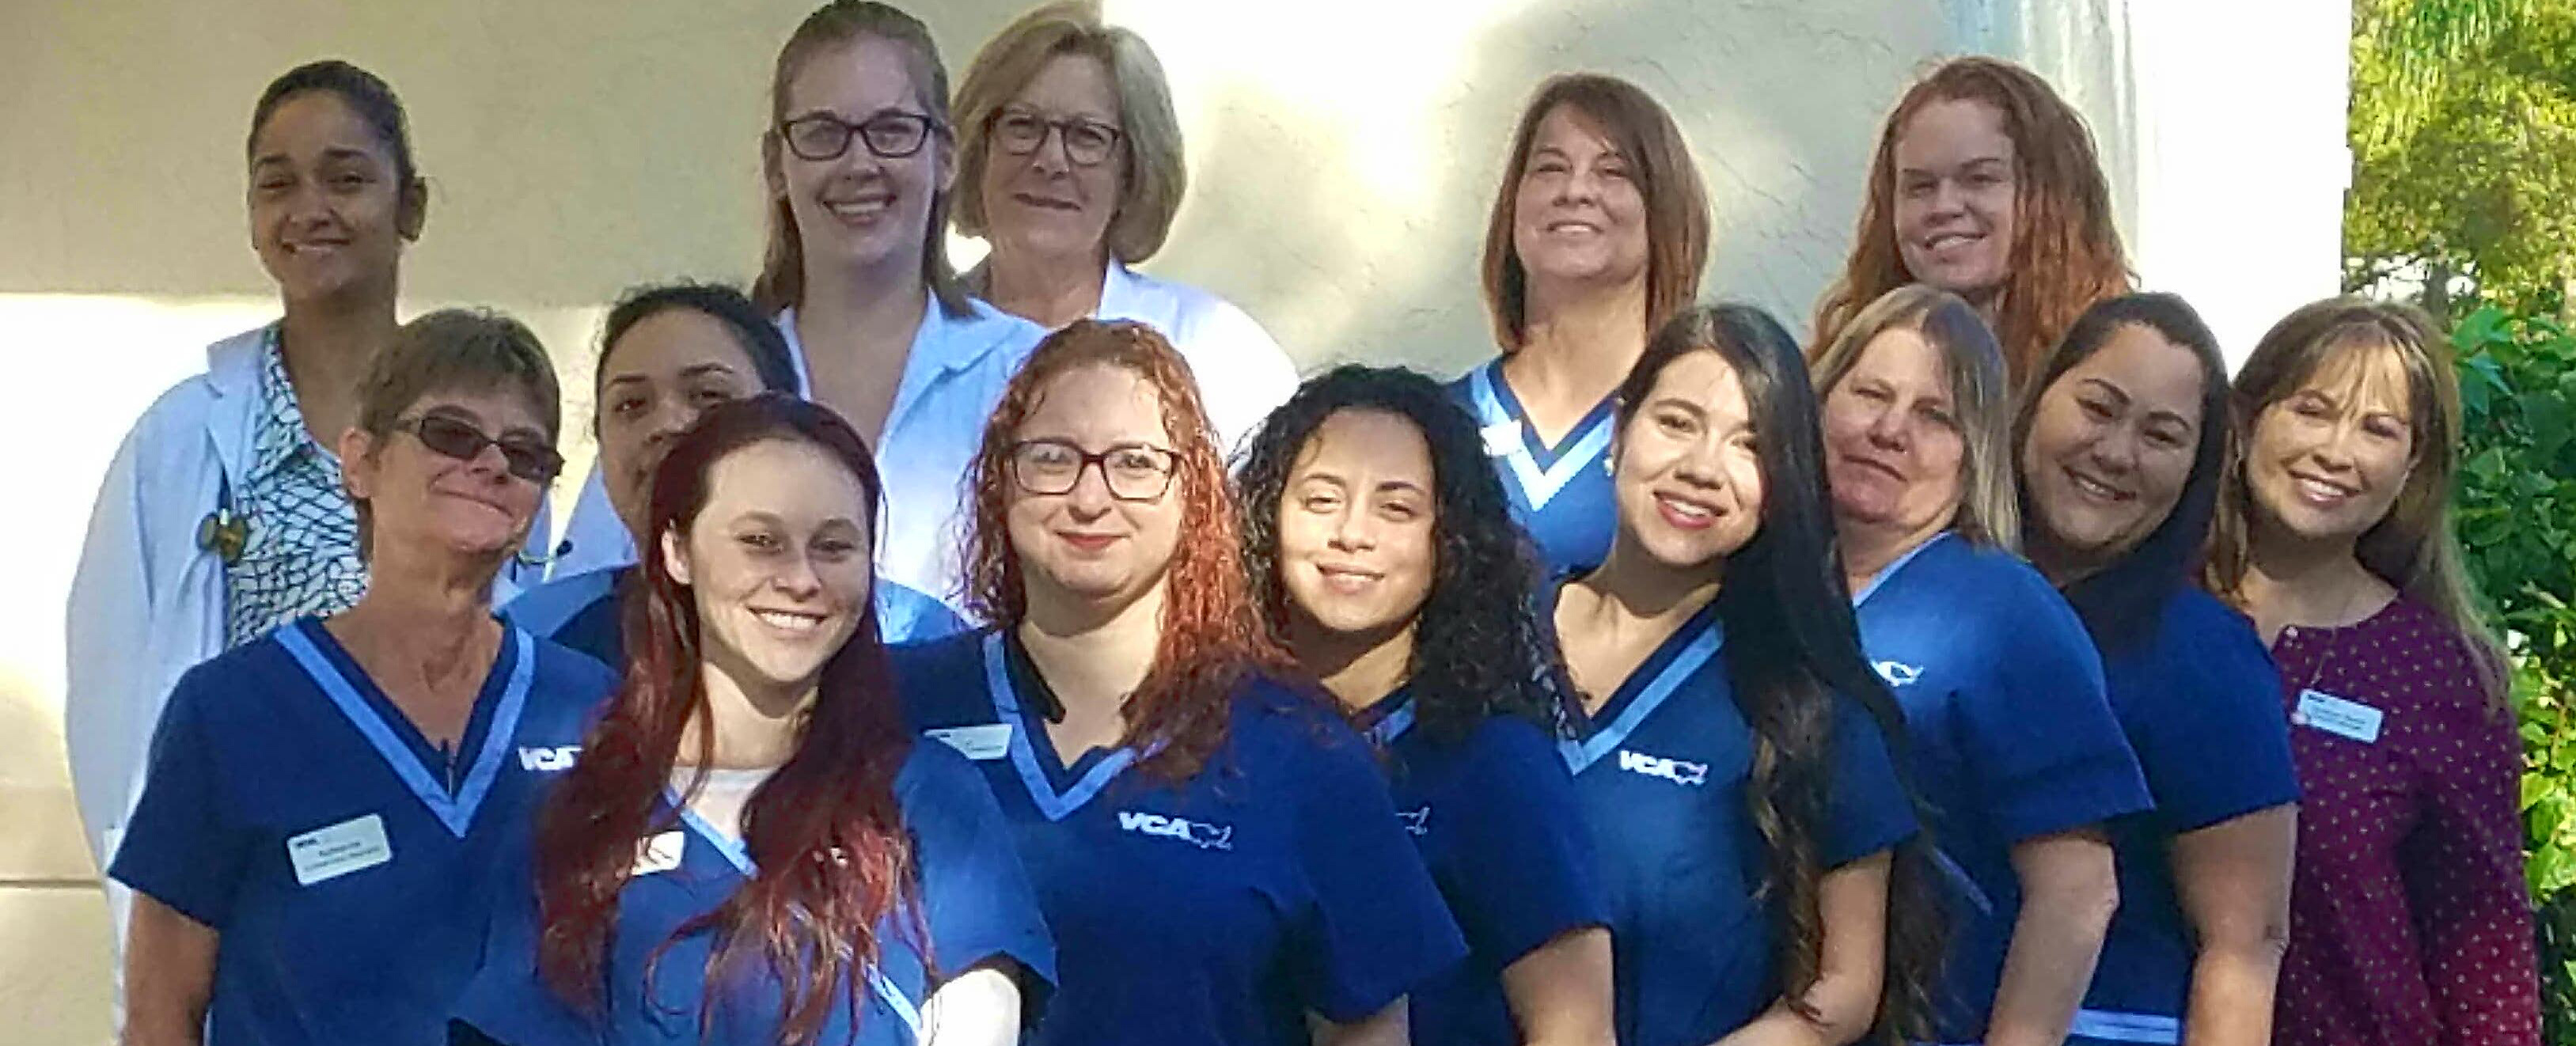 Team Picture of VCA Silver Lakes Animal Hospital